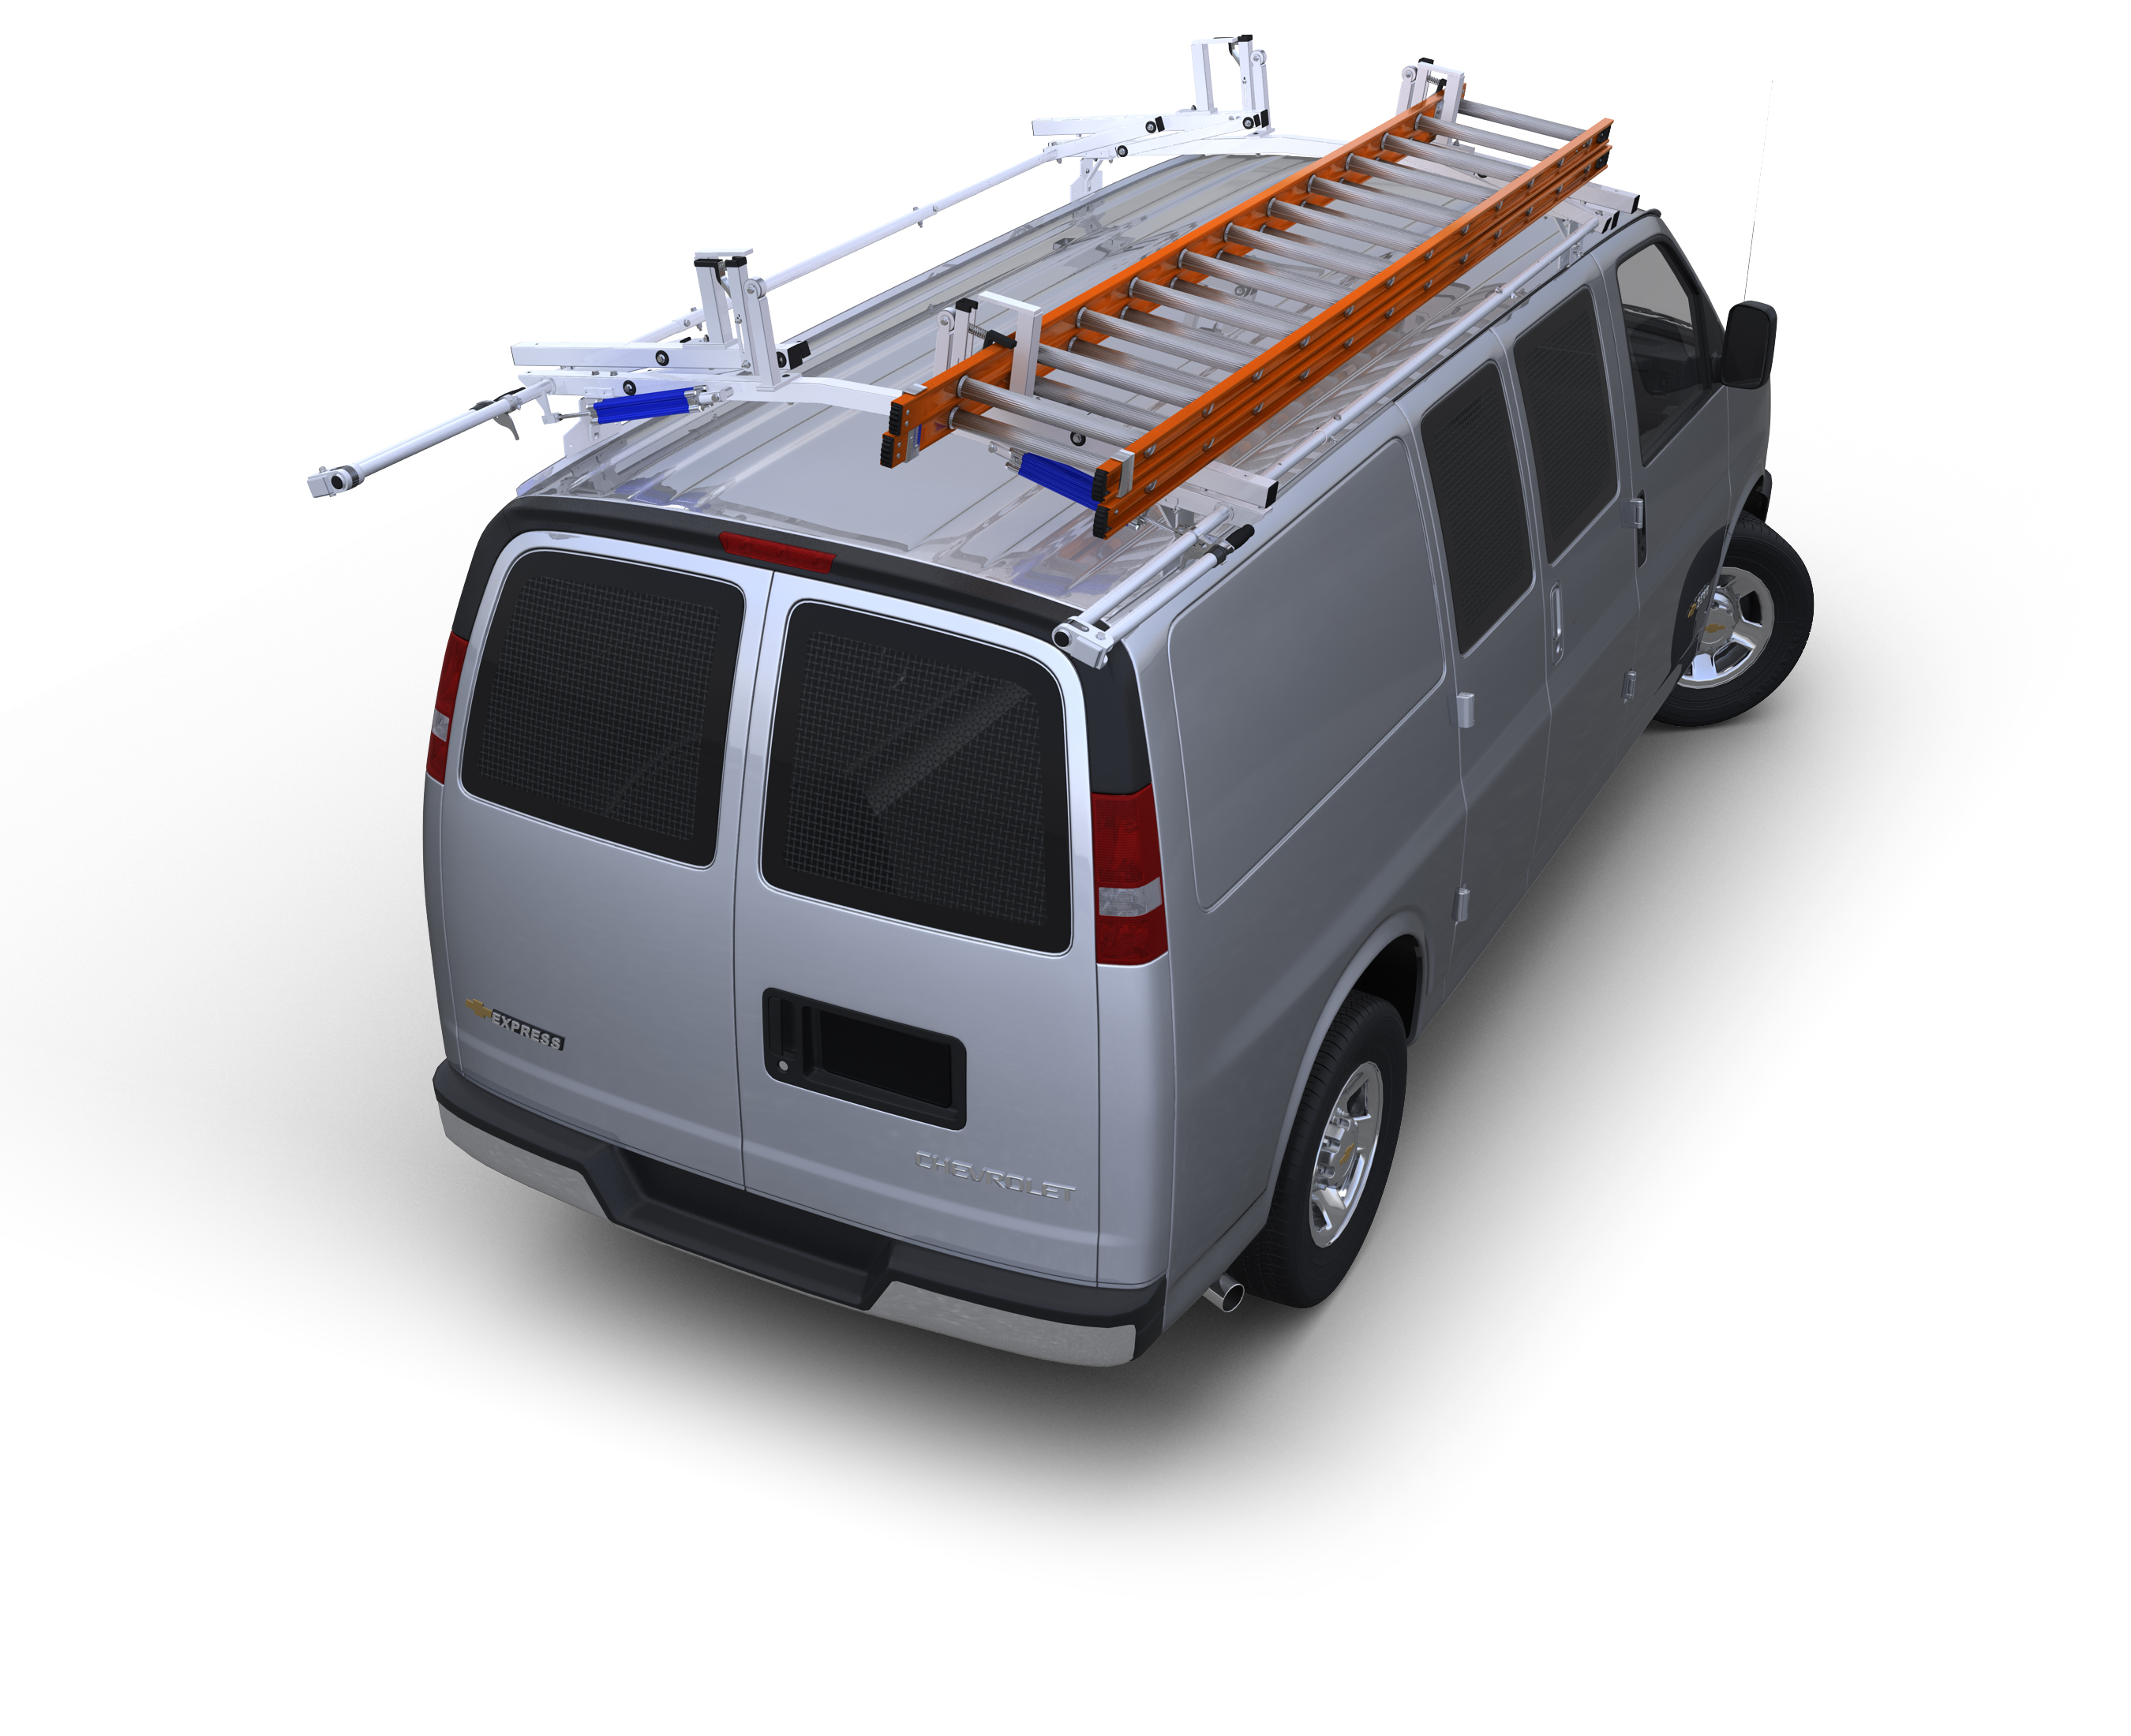 The All Aluminum AluRack™ Cargo Carrier for Ford Transit Vans